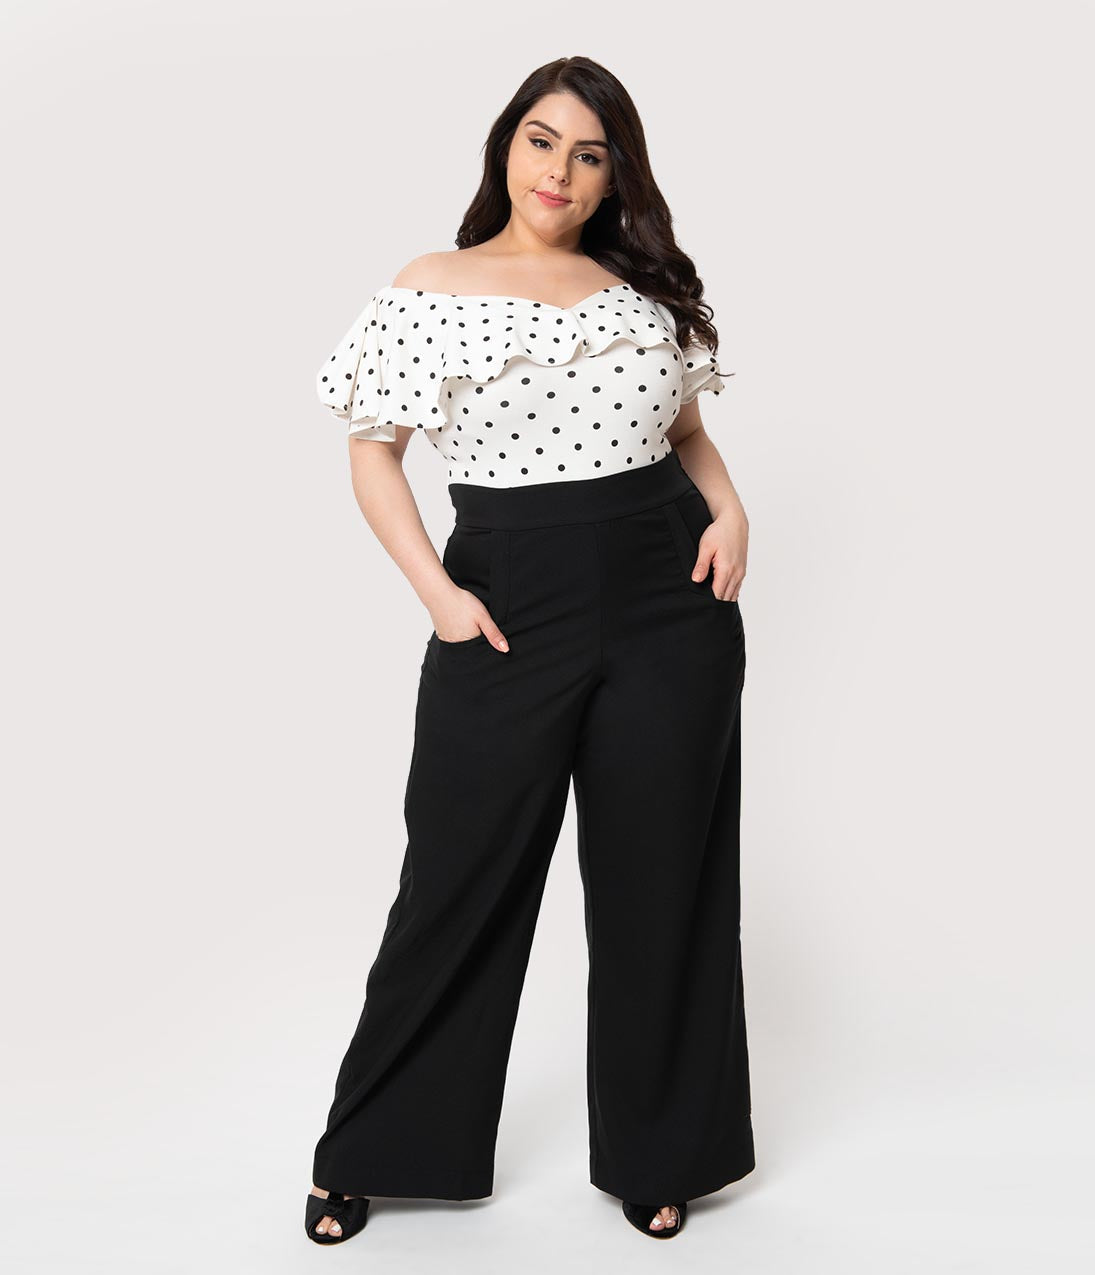 1940s Swing Pants & Sailor Trousers- Wide Leg, High Waist Unique Vintage Plus Size 1940S Black High Waist Wide Leg Ginger Trousers $62.00 AT vintagedancer.com